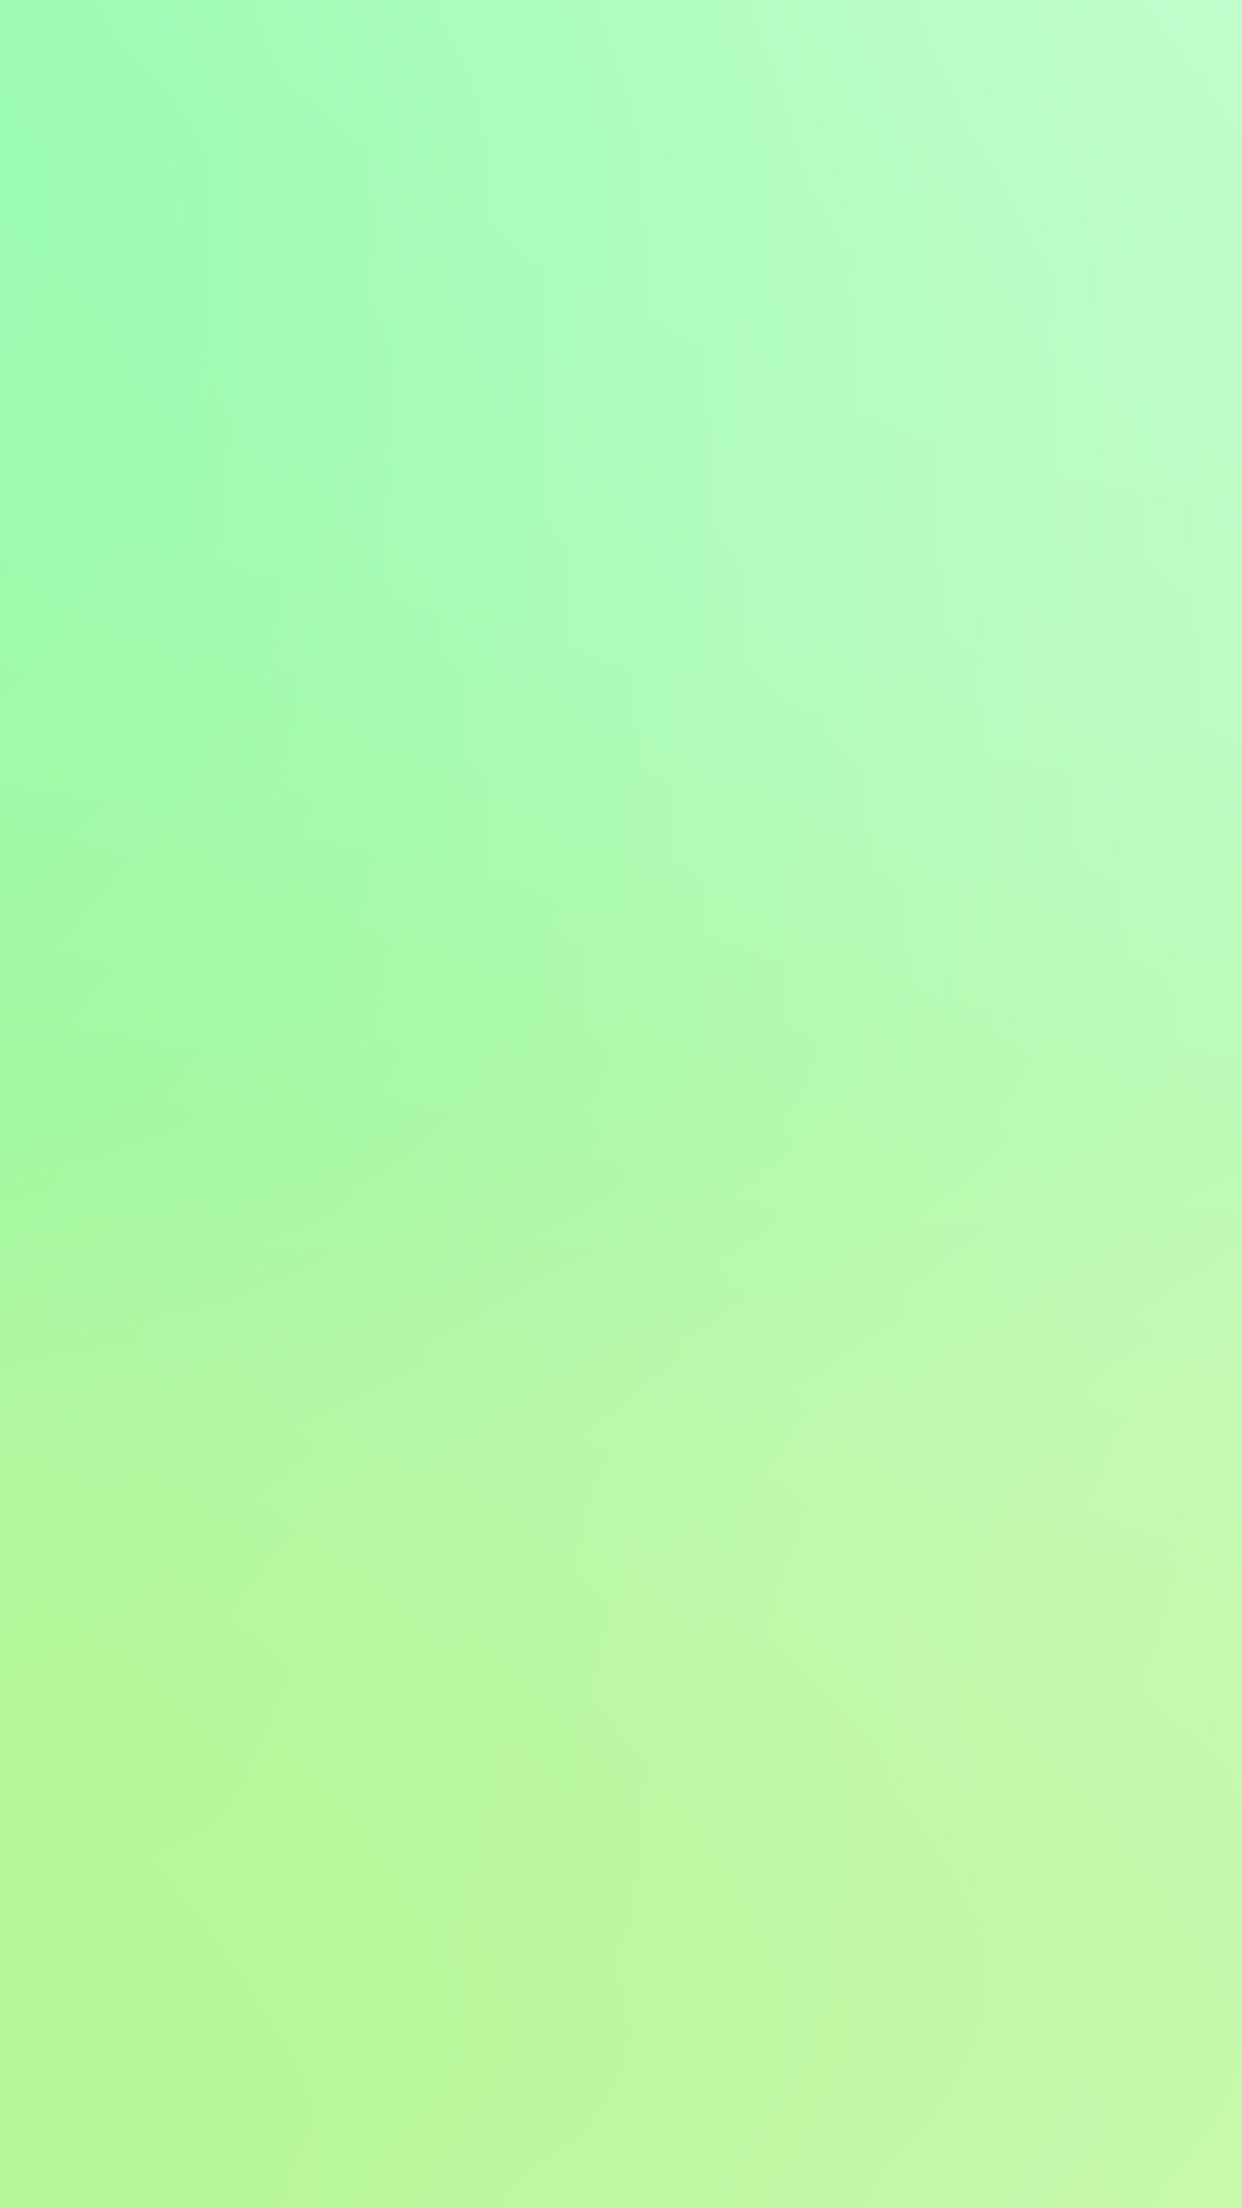 sm60-cool-pastel-blur-gradation-green